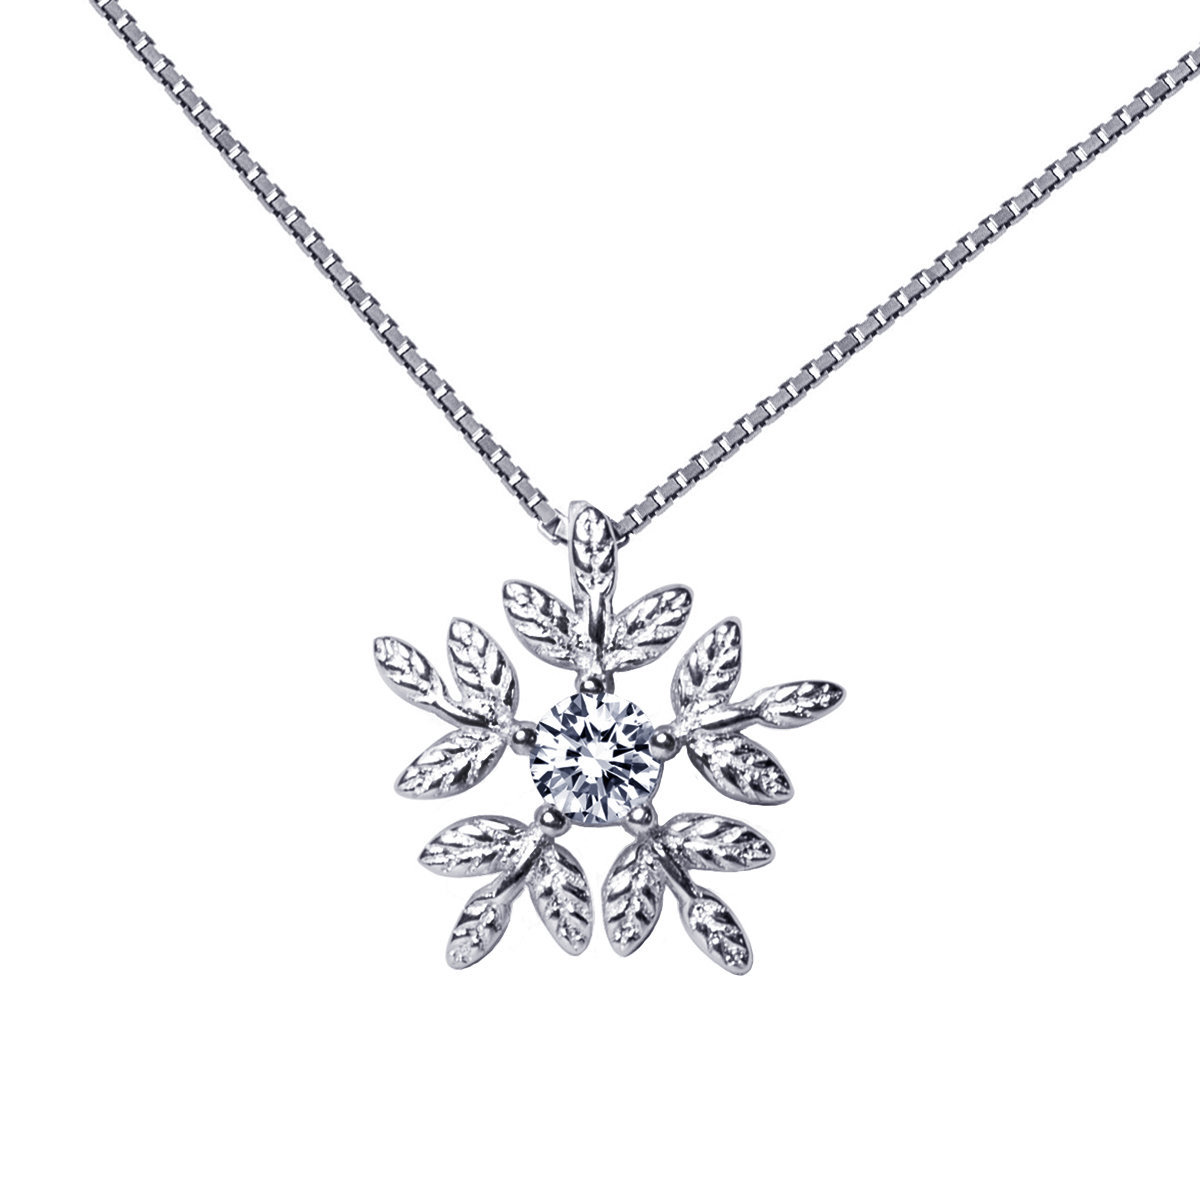 Winter- 925 Silver mounted with cz earring